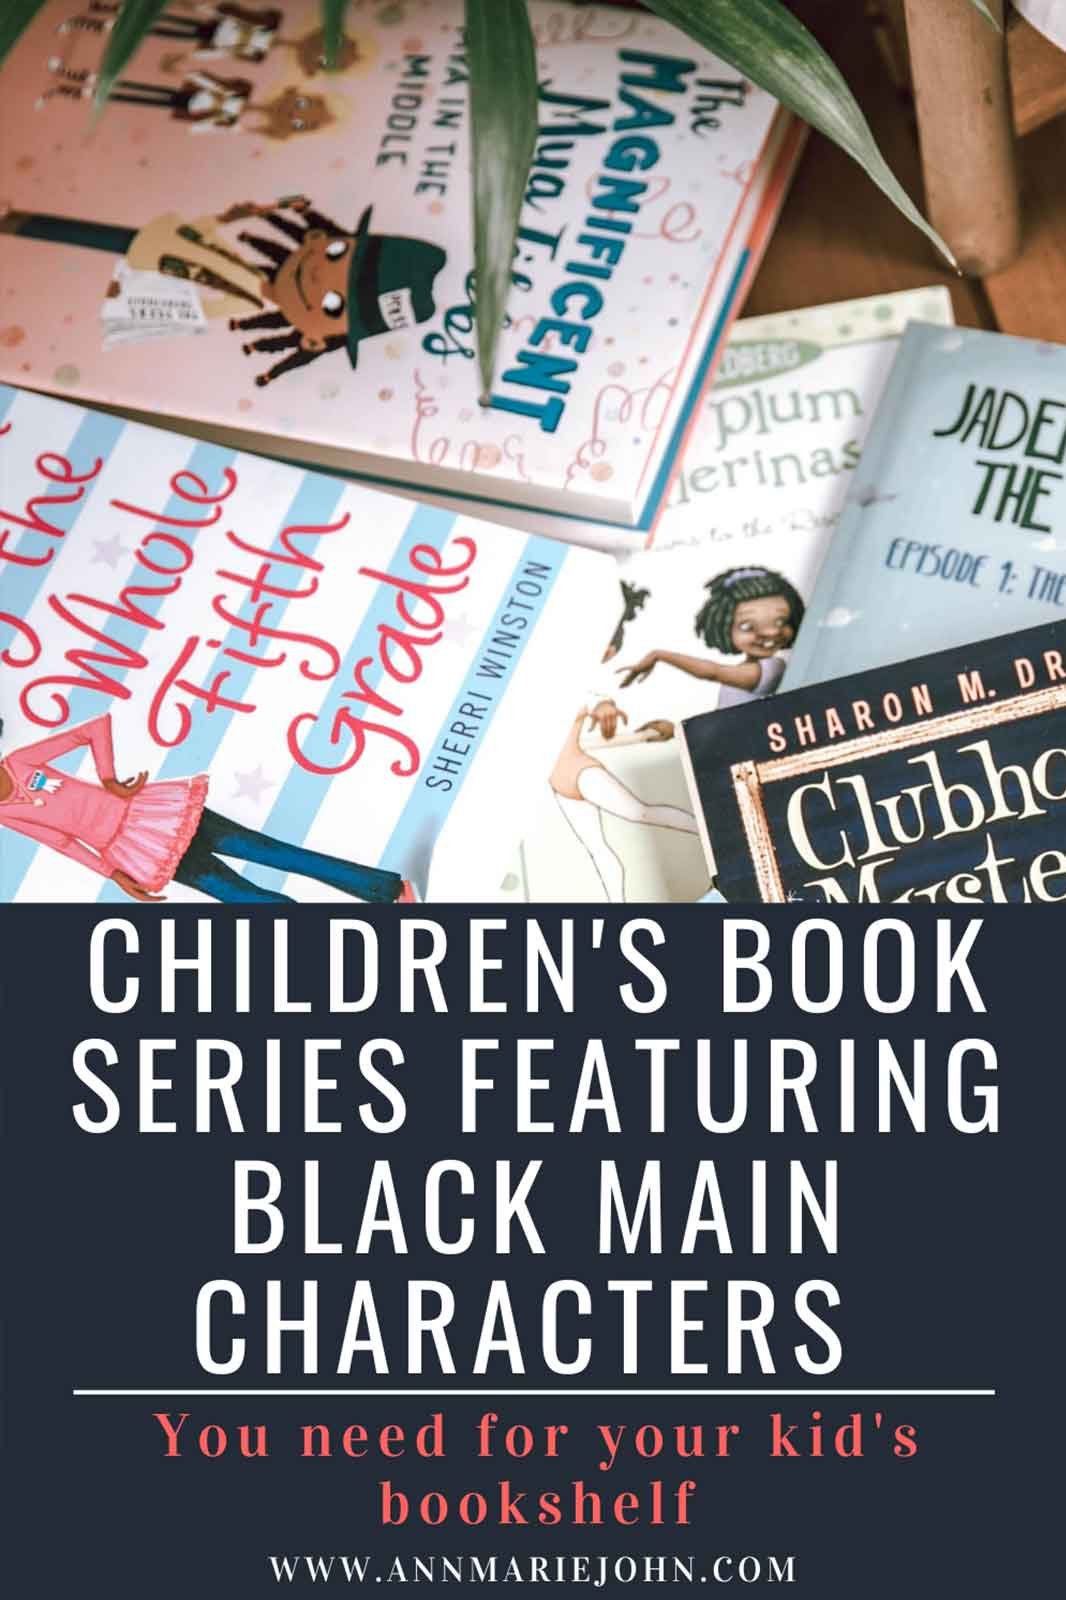 Children's Book Series Featuring Black Main Characters